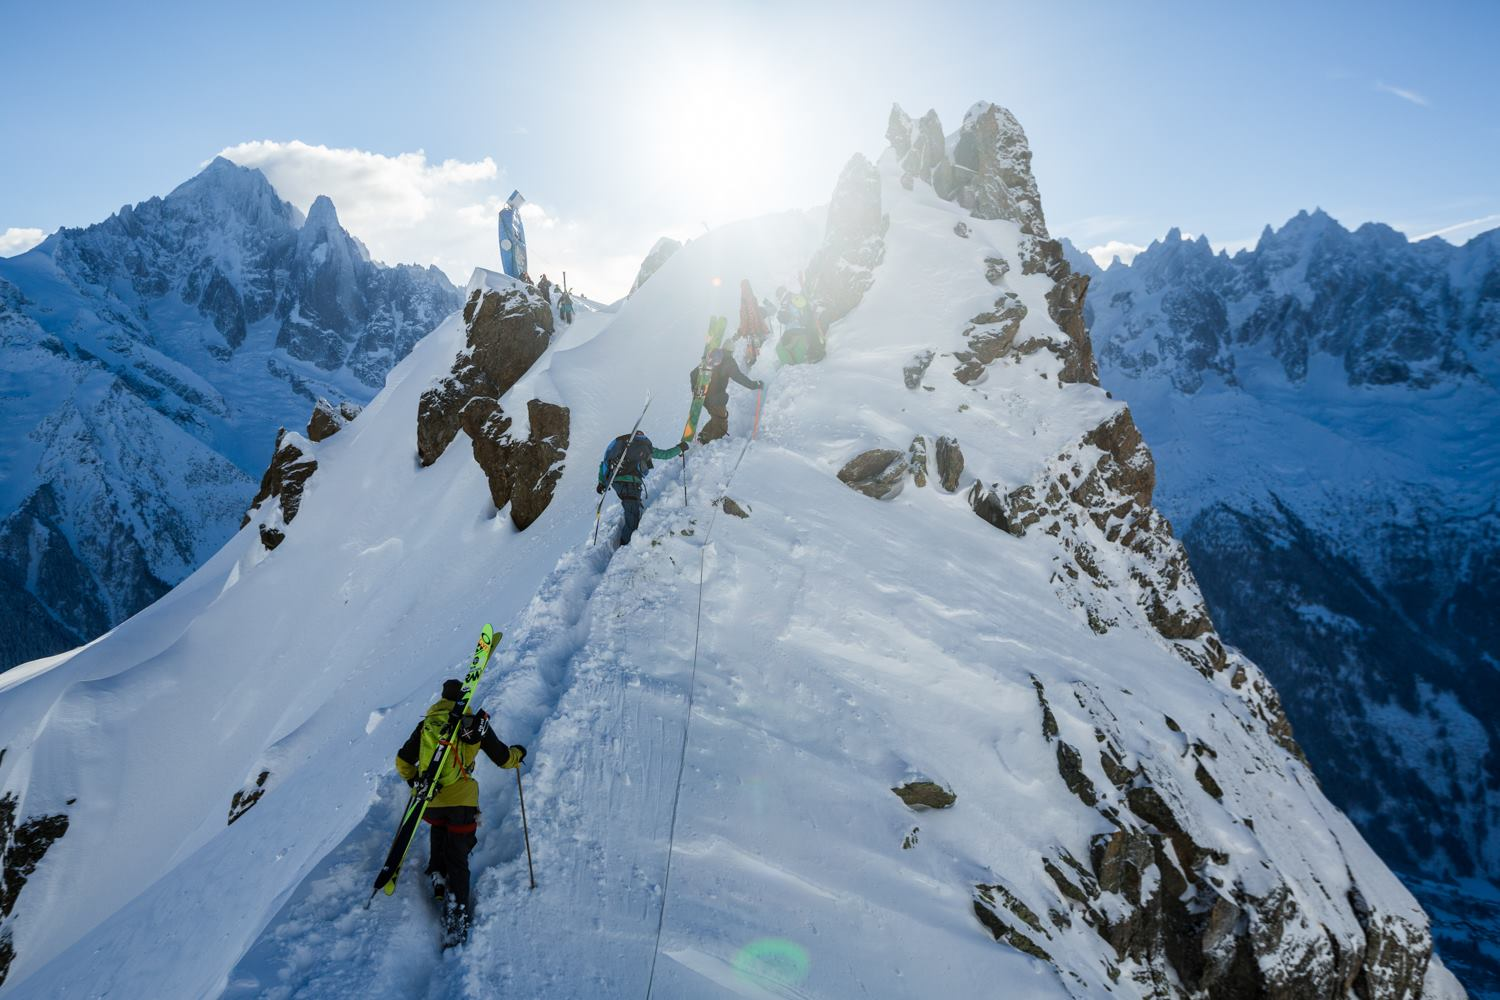 Exactly three weeks left and FWT riders will be hiking up in Chamonix-Mont-Blanc again, battling for the first win of the season. // photo: Jeremy Bernard (Facebook)